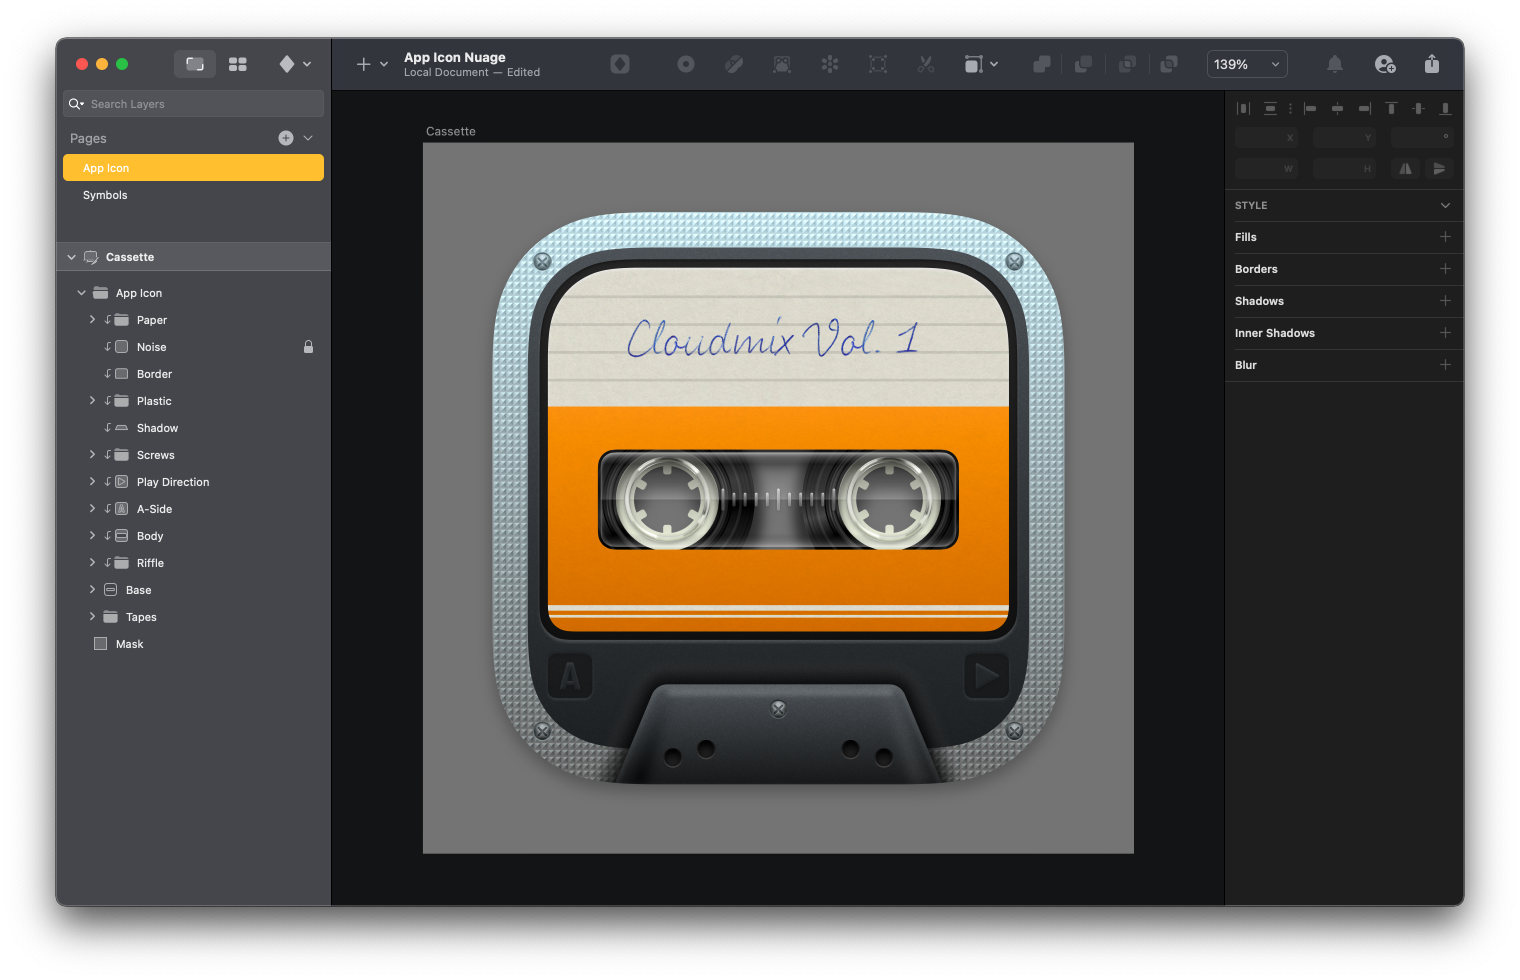 An alternative design to the Nuage icon featuring a cassette inspired icon design.